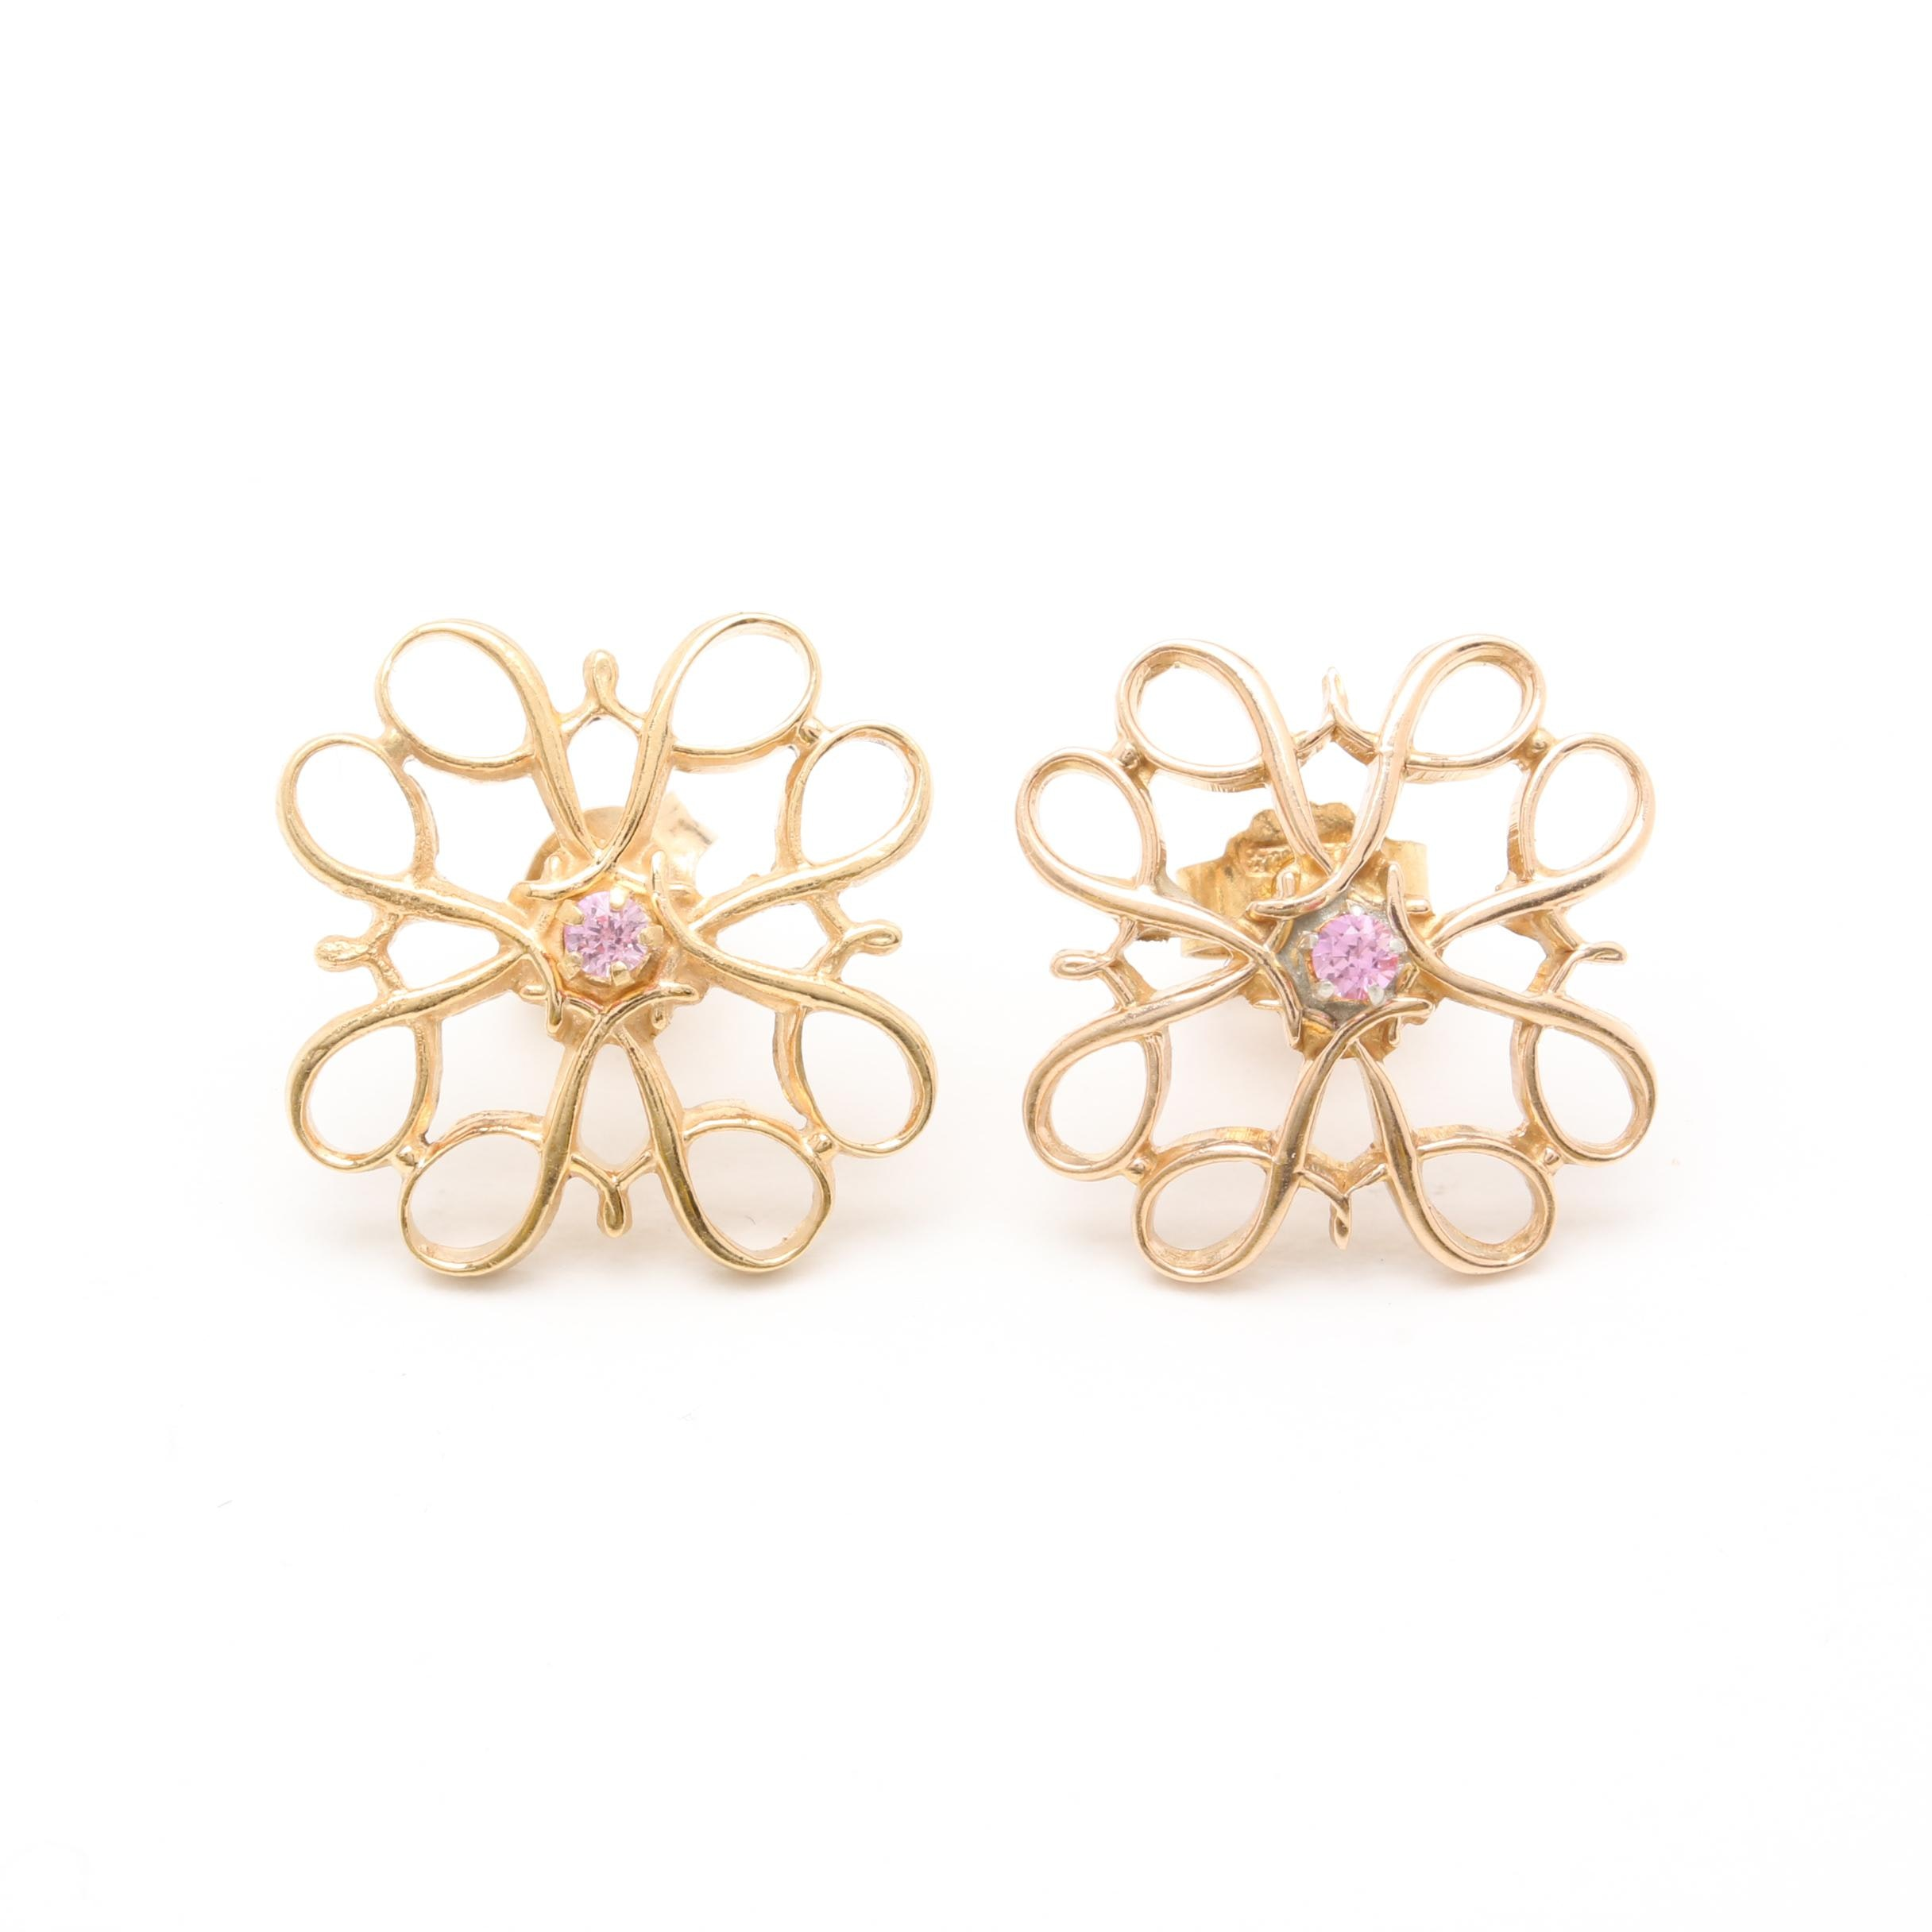 Gold Filled Pink Sapphire Scrolled Earrings